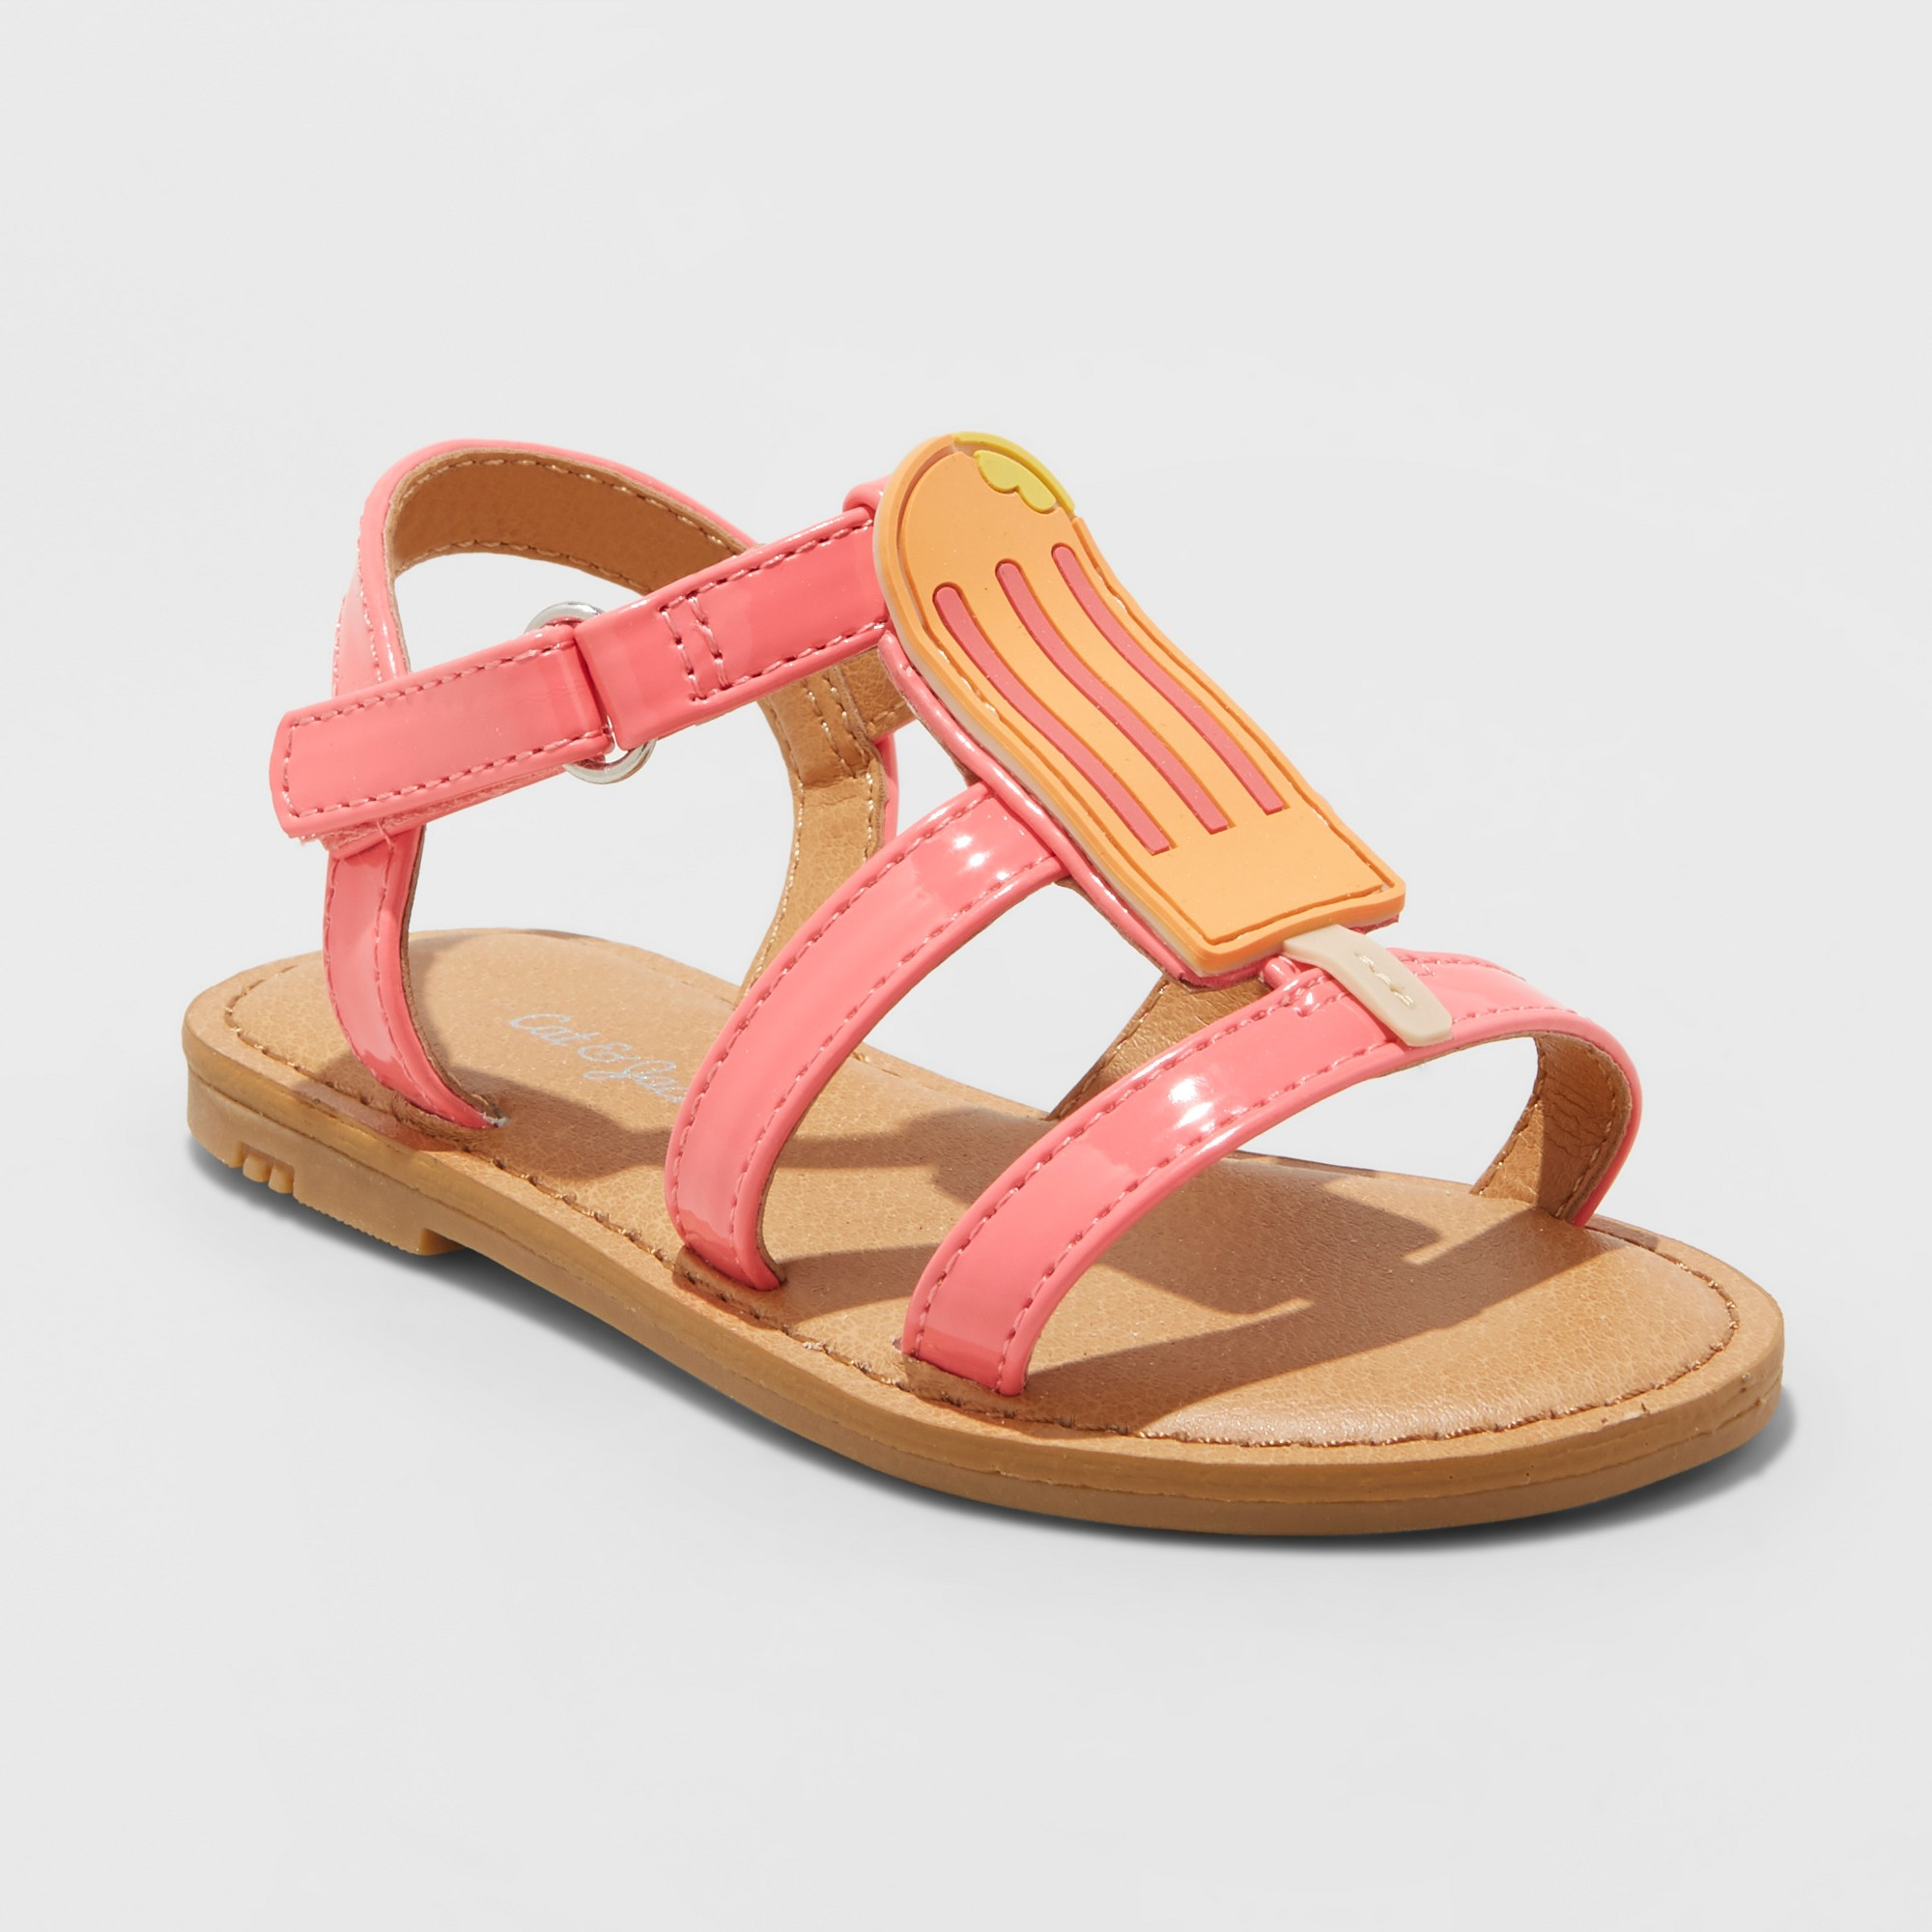 New Cat /& Jack Pink Kelsa Two Piece Slide Sandal Loop /& Hook Toddler Girls Sz 11